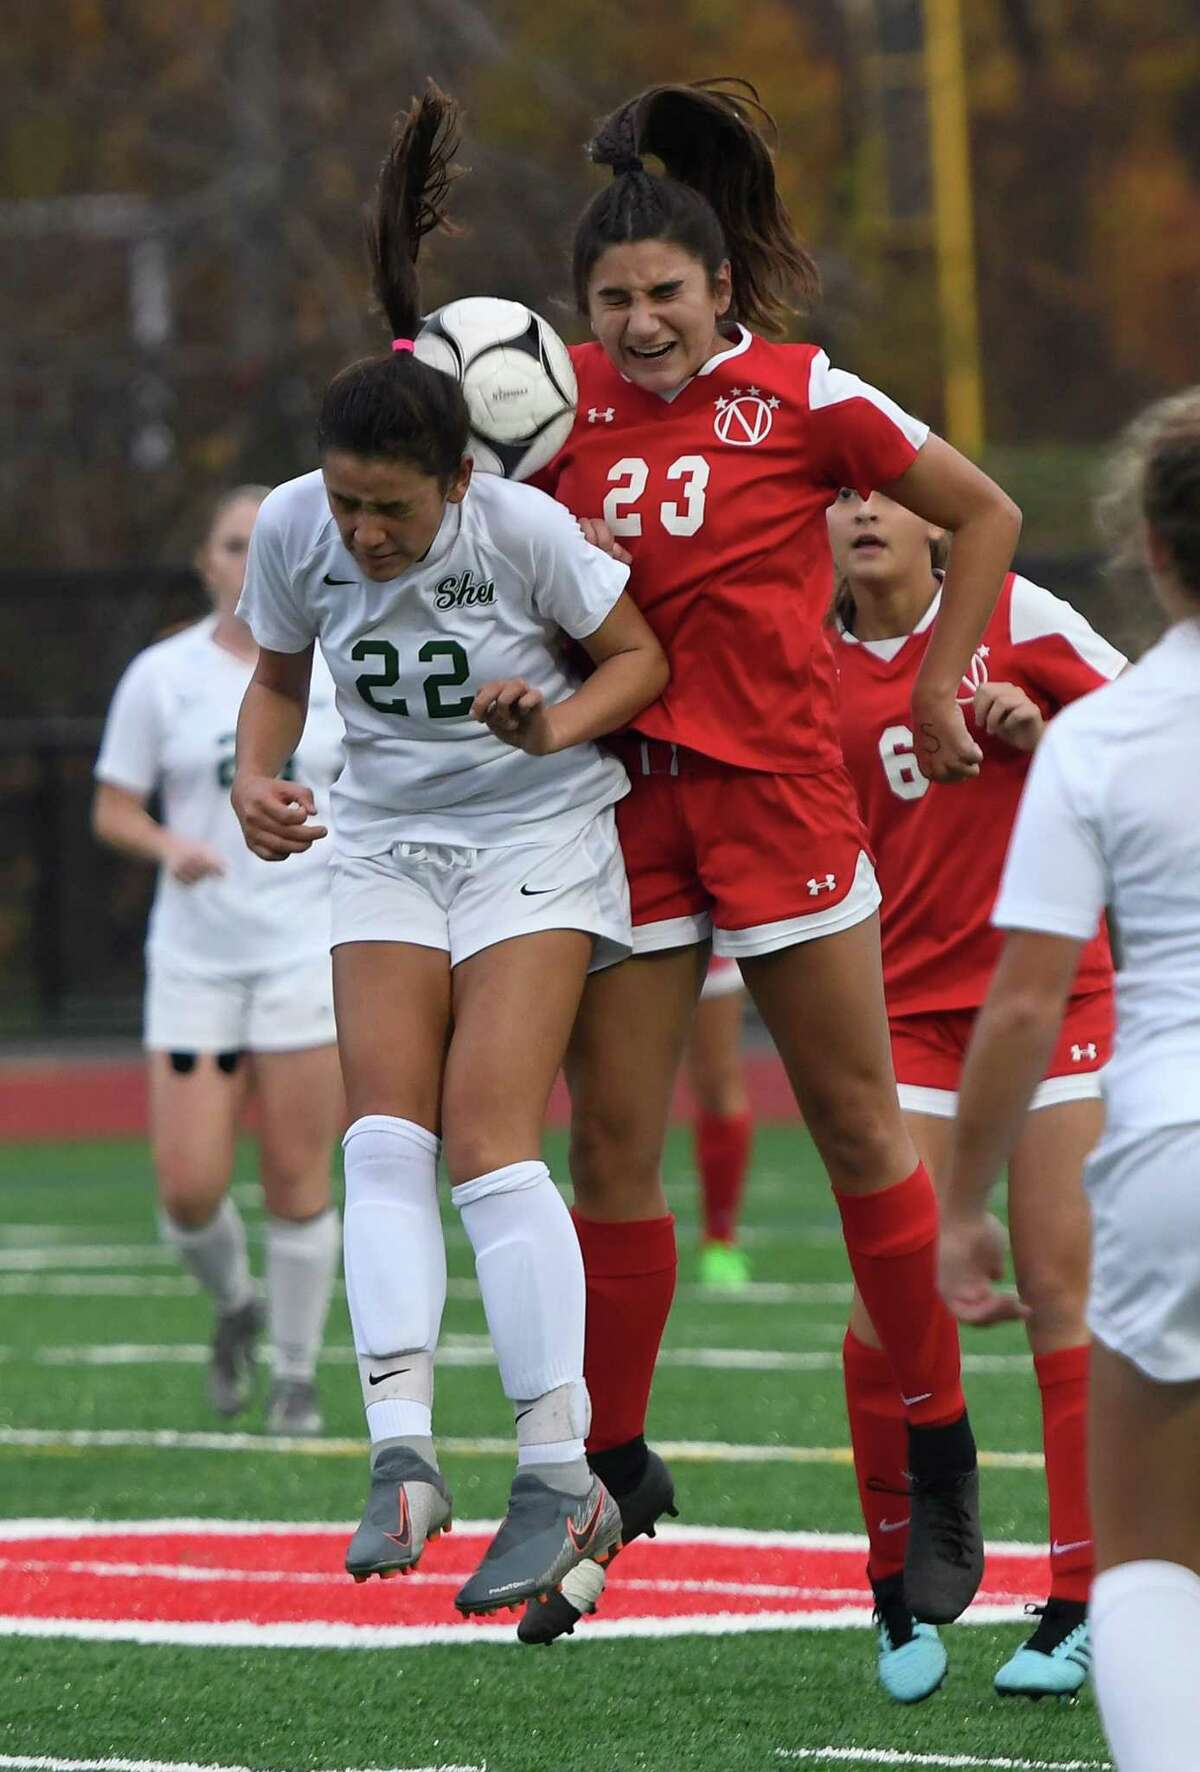 Niskayuna's Maria Tsakalakos and Shenendehowa's Georgia Greene attempt to head the ball during their Class AA semifinal match on Wednesday, Oct. 30, 2019, in Mechanicville, N.Y. (Jenn March, Special to the Times Union)